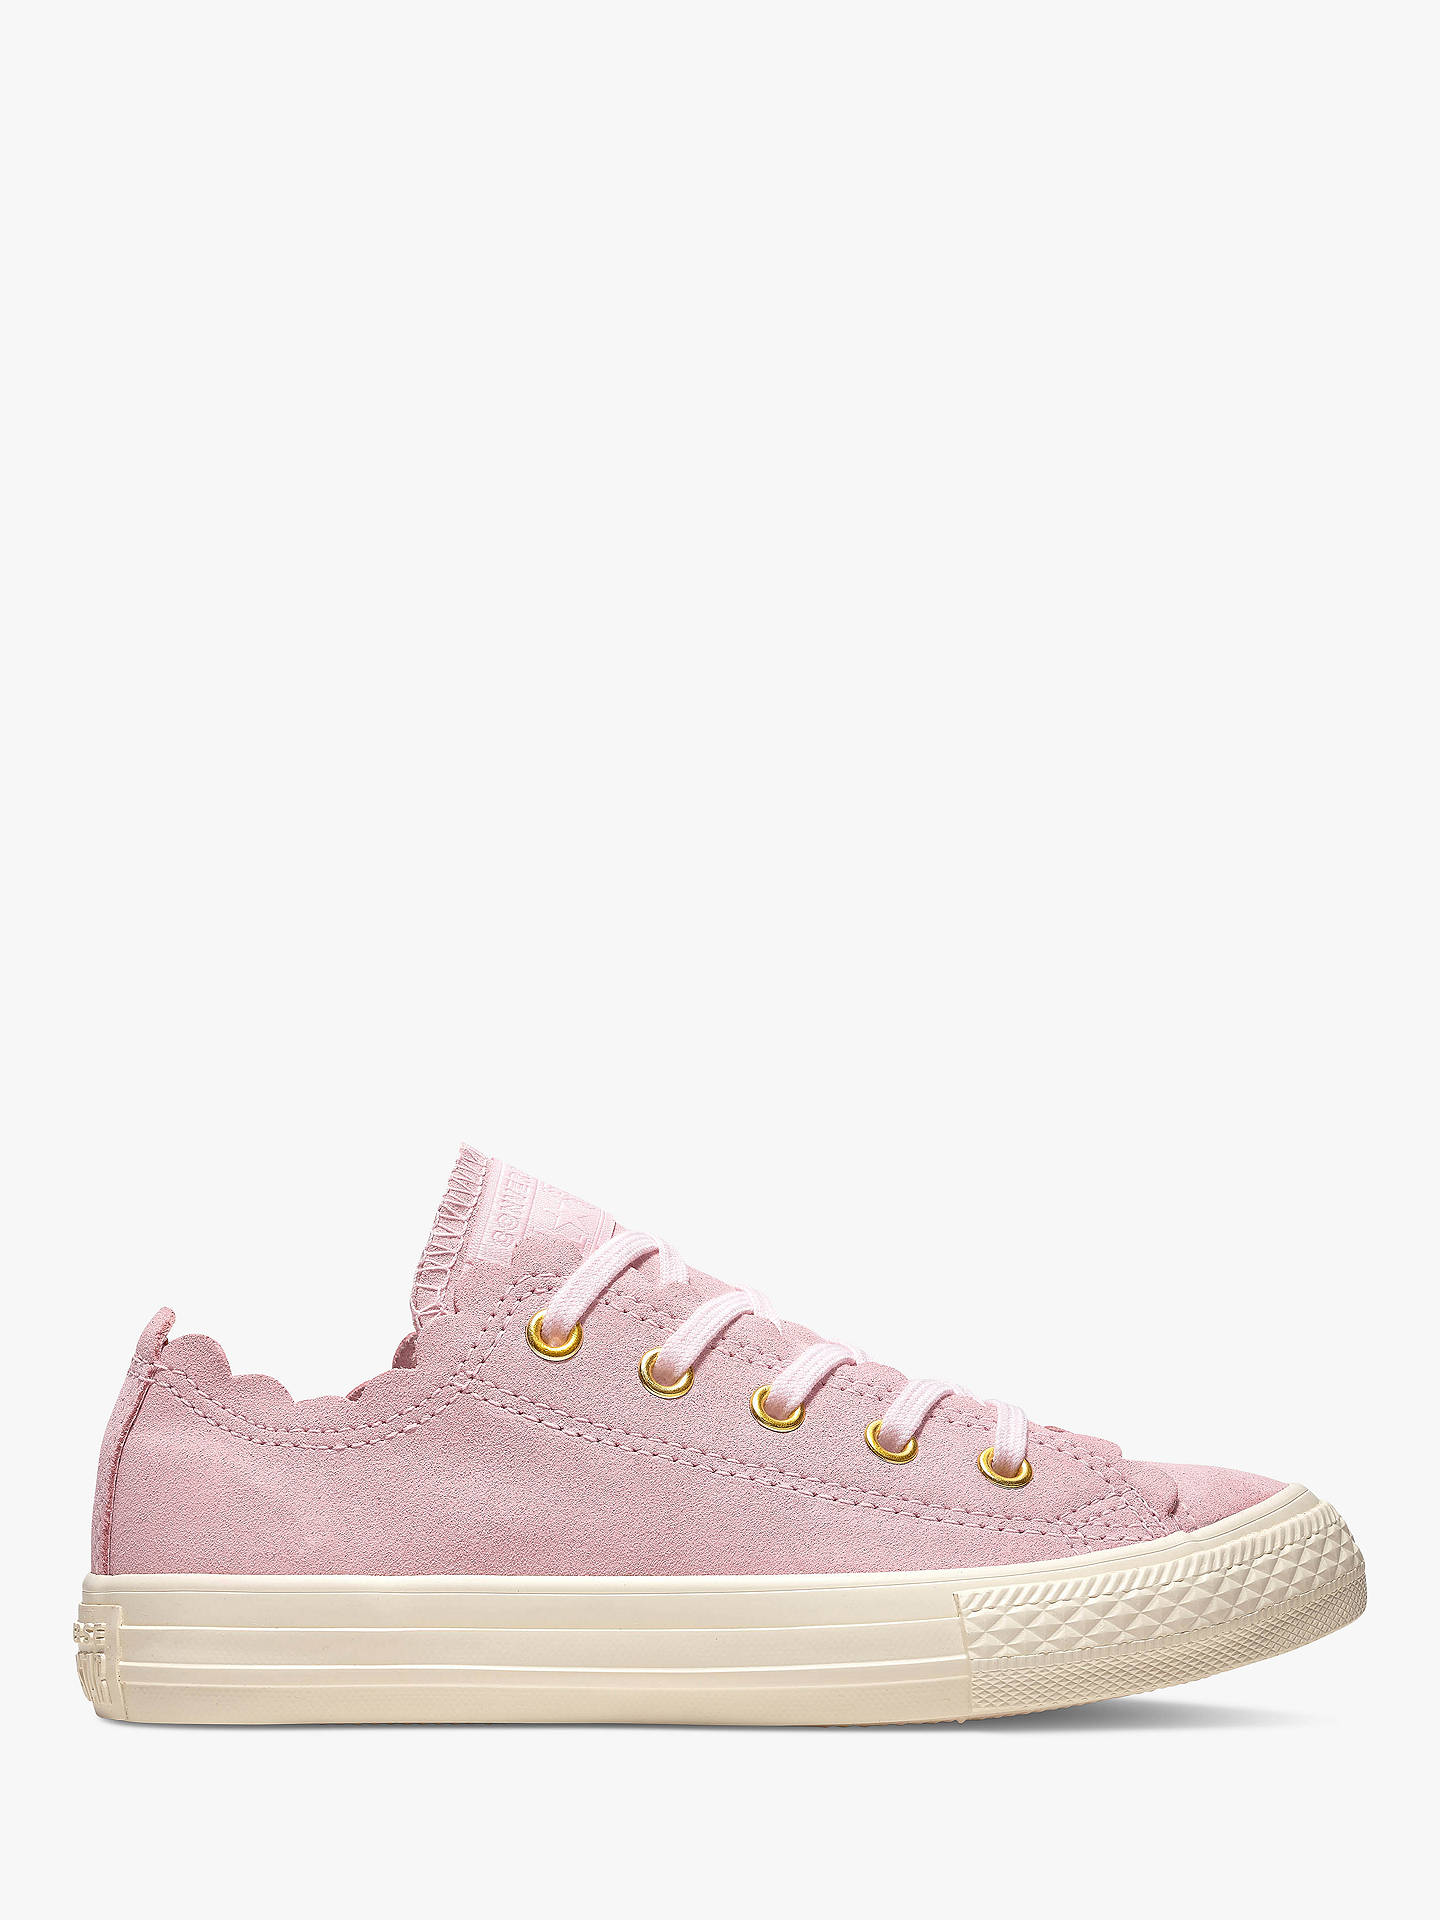 8633407deece Buy Converse Chuck Taylor All Star Suede Scallop Trainers